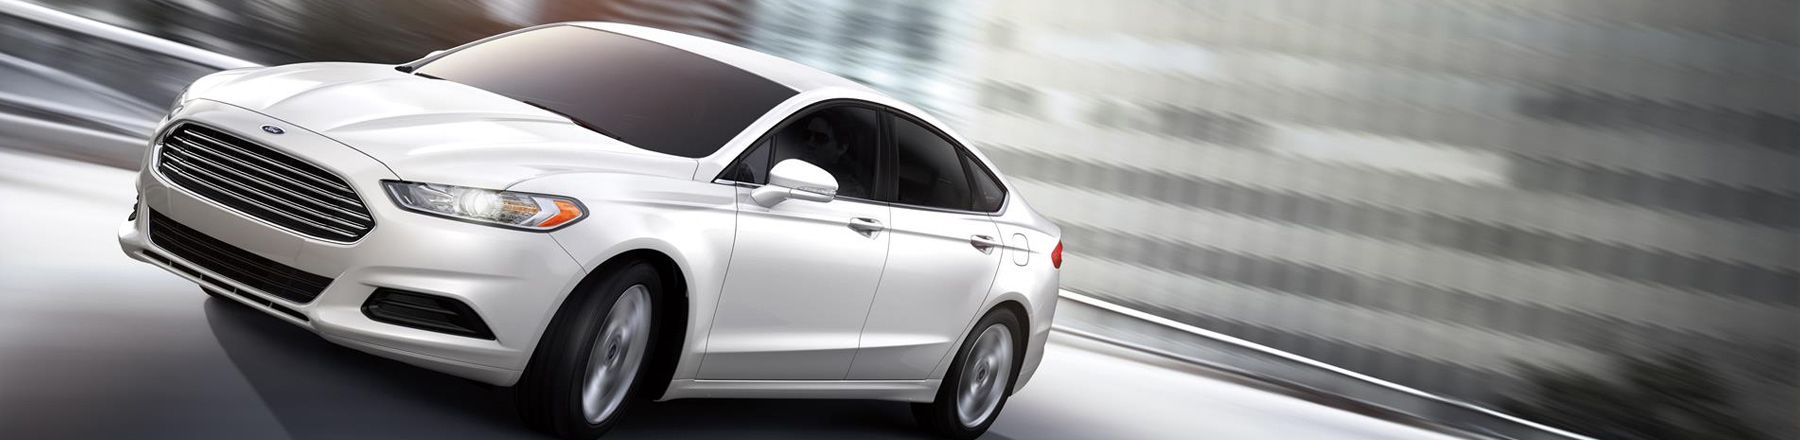 2016 Ford Fusion model in Wallaceburg, ON